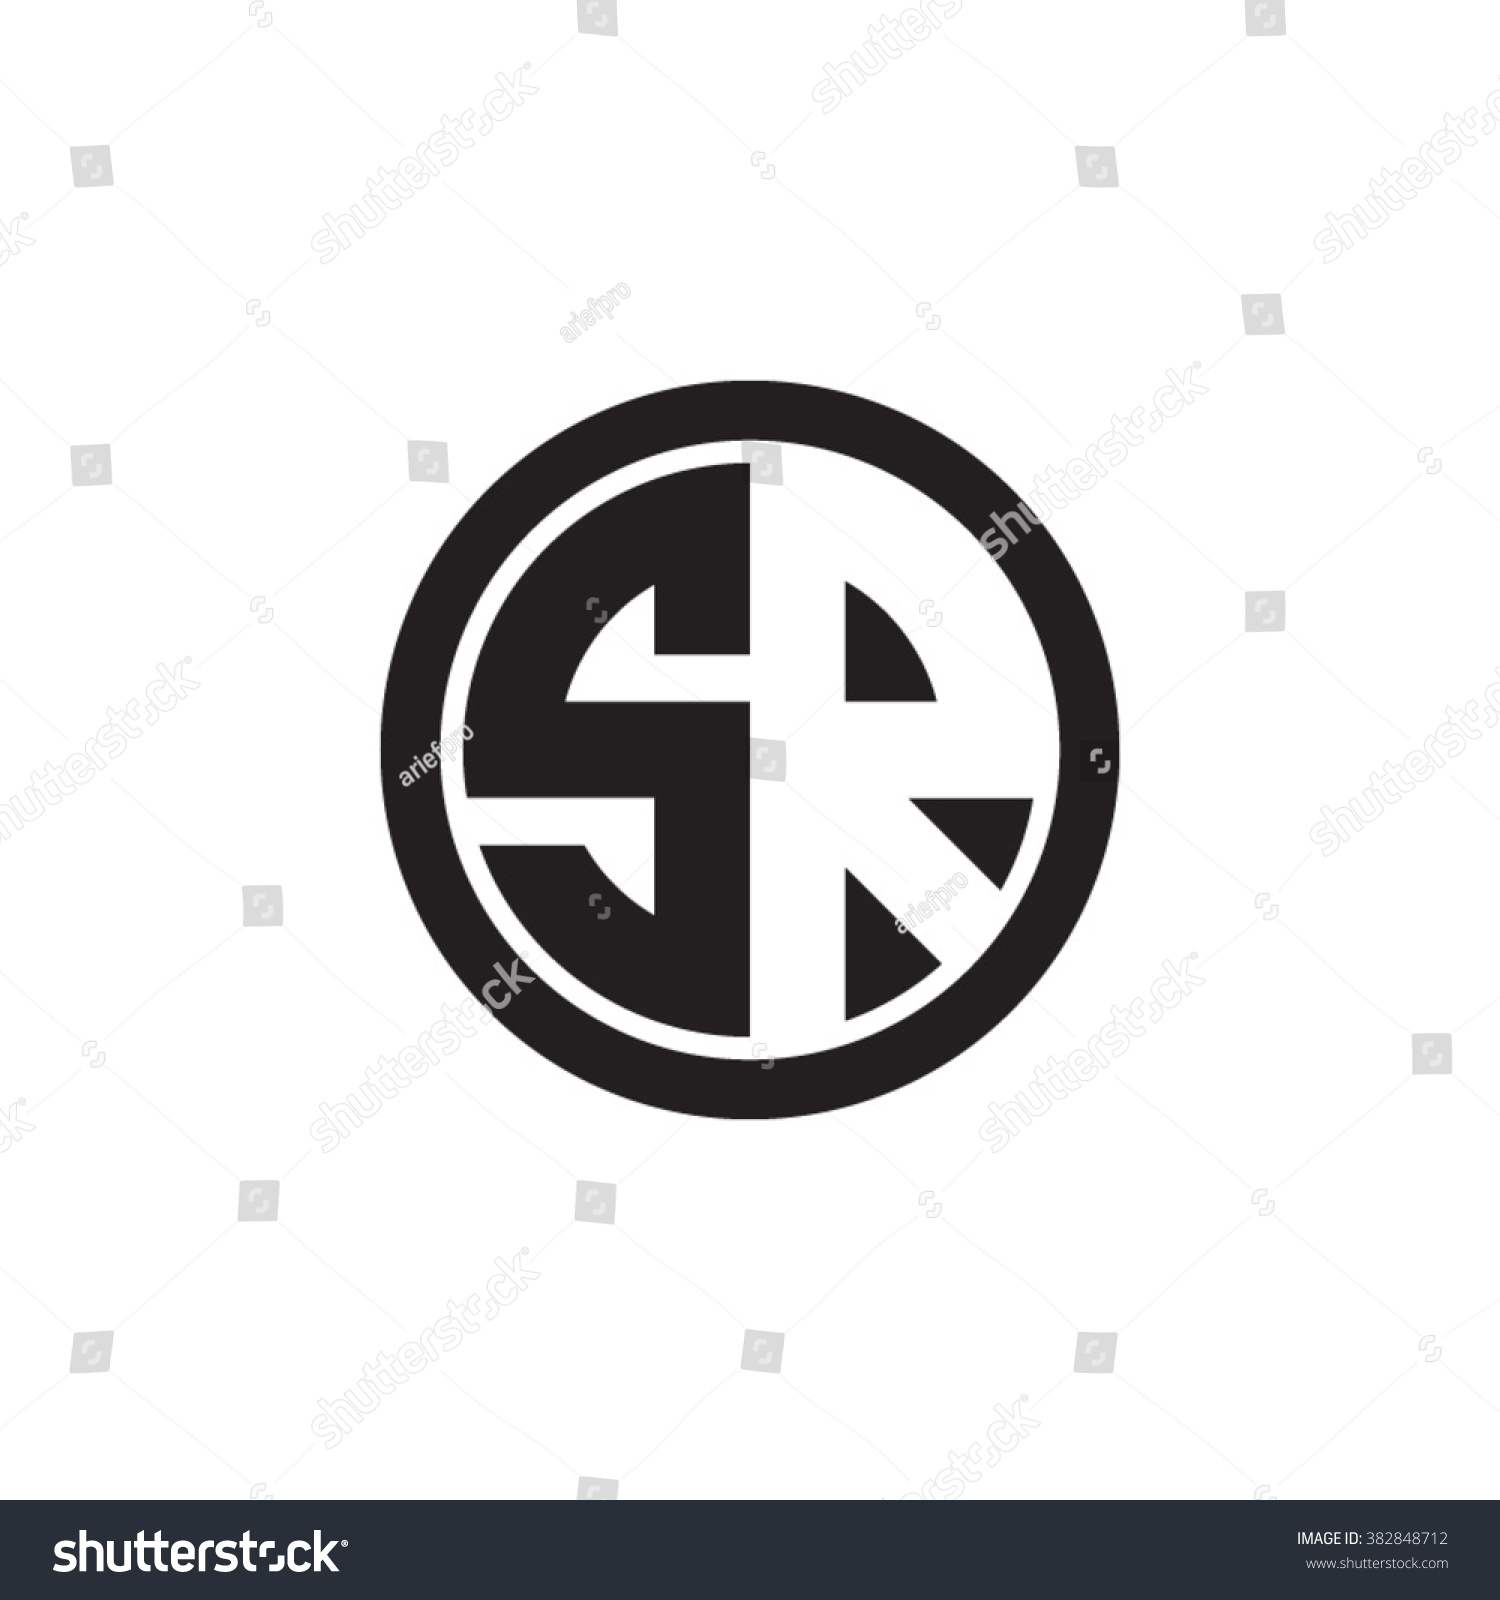 Sr Initial Letters Circle Monogram Logo Stock Vector Royalty Free 382848712